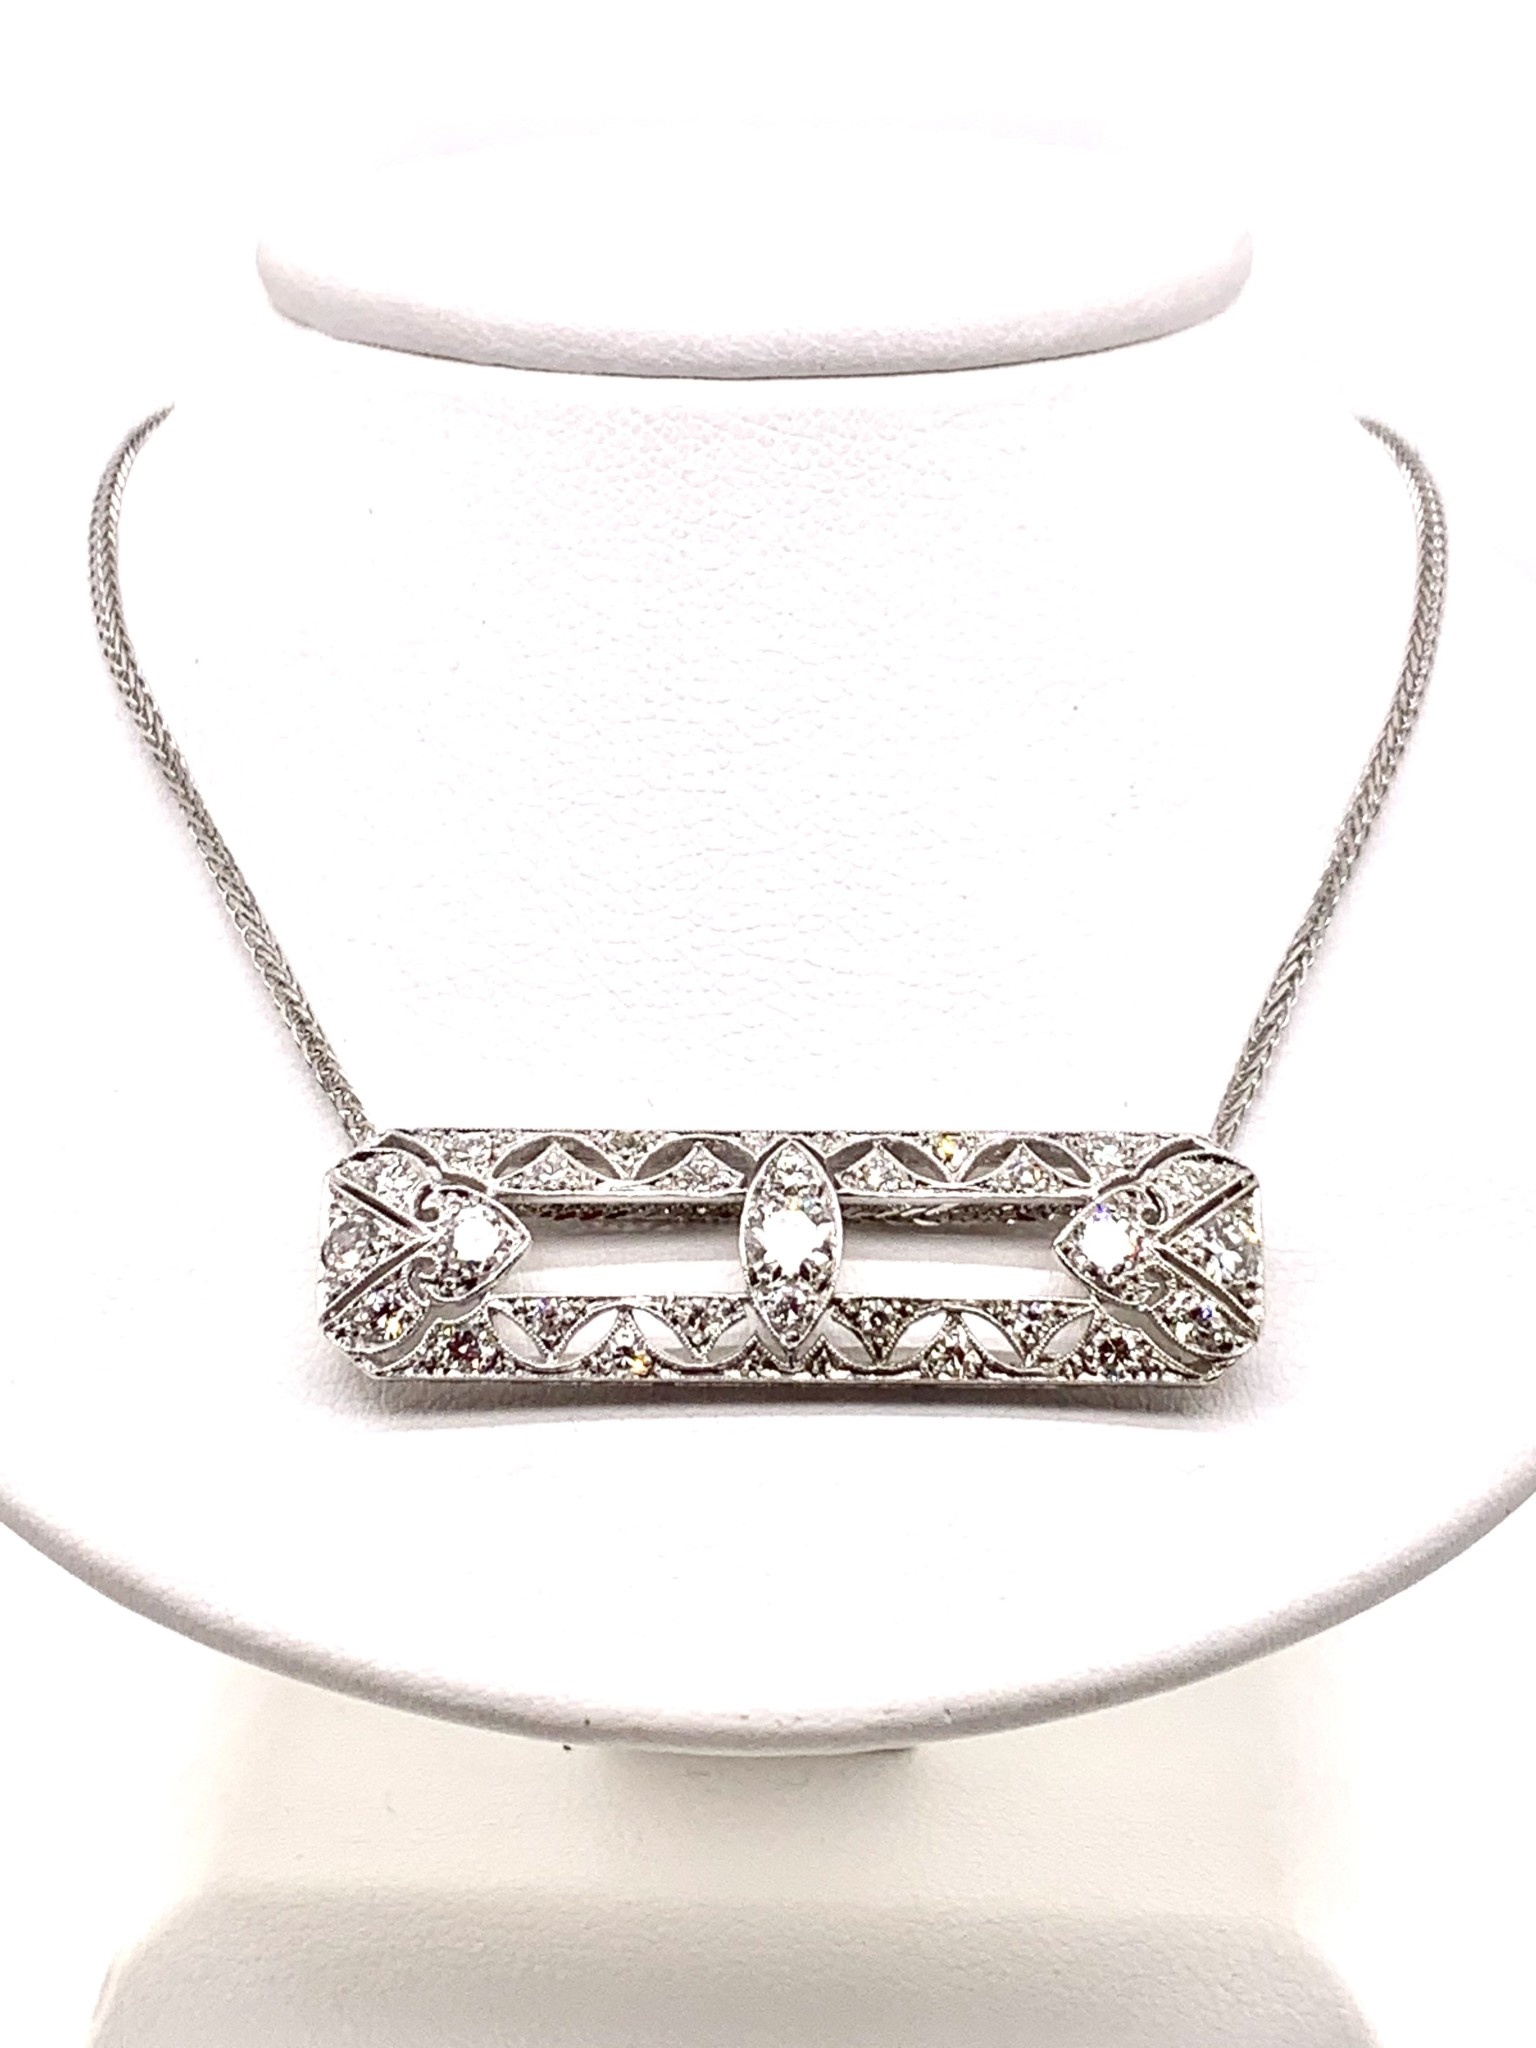 Platinum Art Deco pendant approx. 1.50ctw F/G/VVS on a 20in 1mm 14k white gold chain